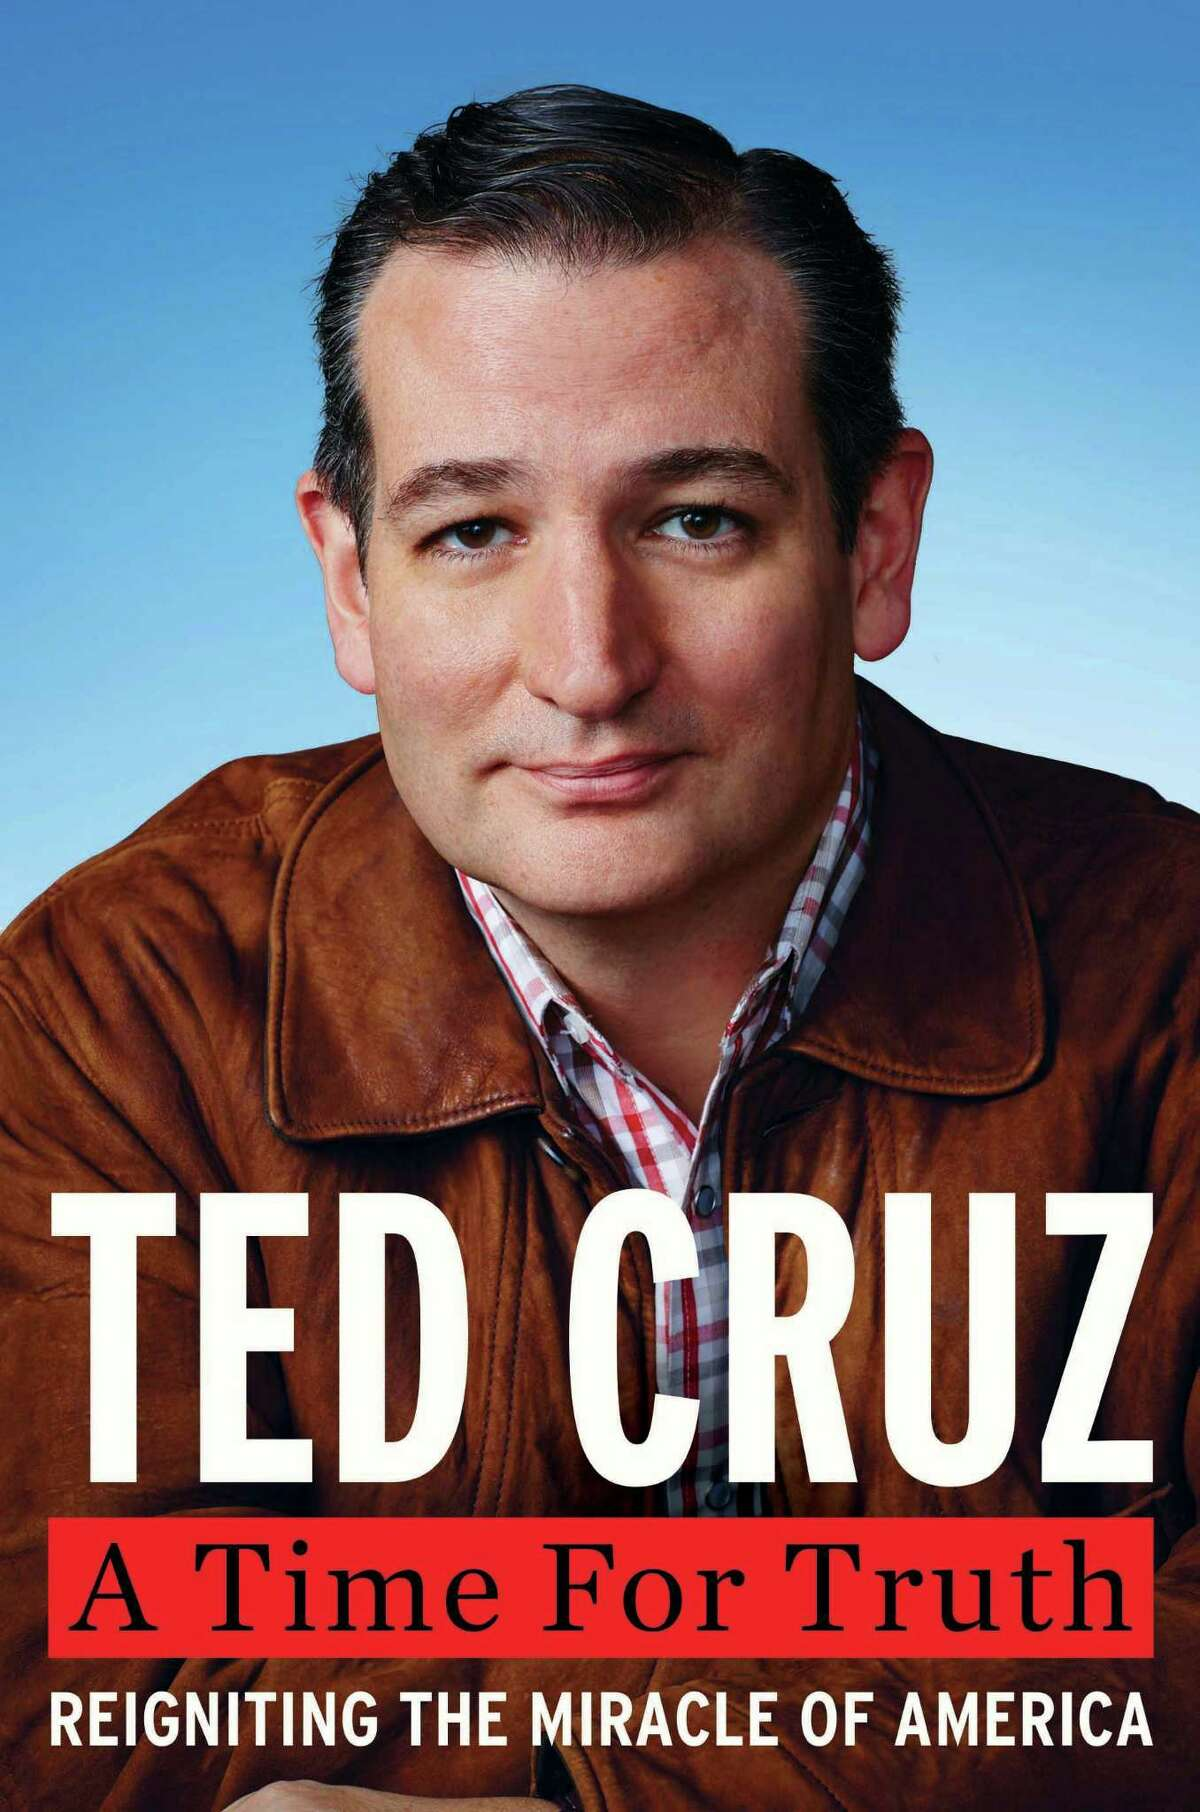 Sen. Ted Cruz's new book 'A Time for Truth' offers some new insight into the mind of the GOP presidential candidate. It also has angered some of the Texas senator's rivals.